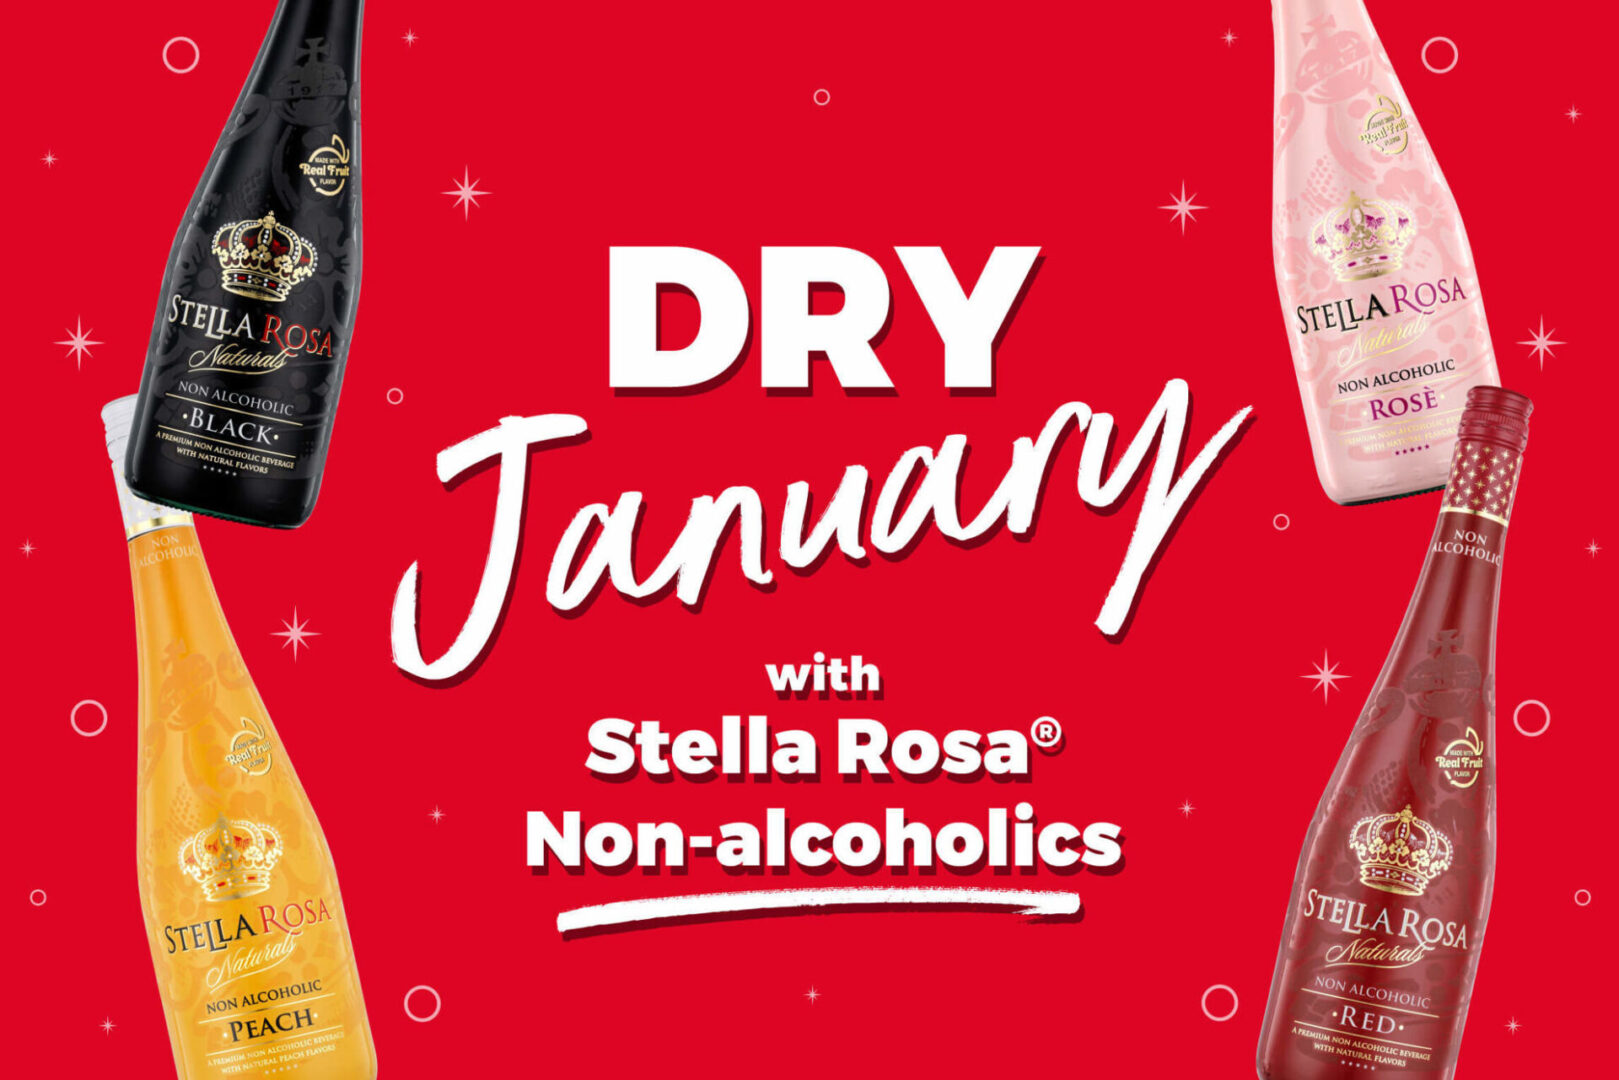 0001118_dry-january-with-stella-rosa-non-alcoholics